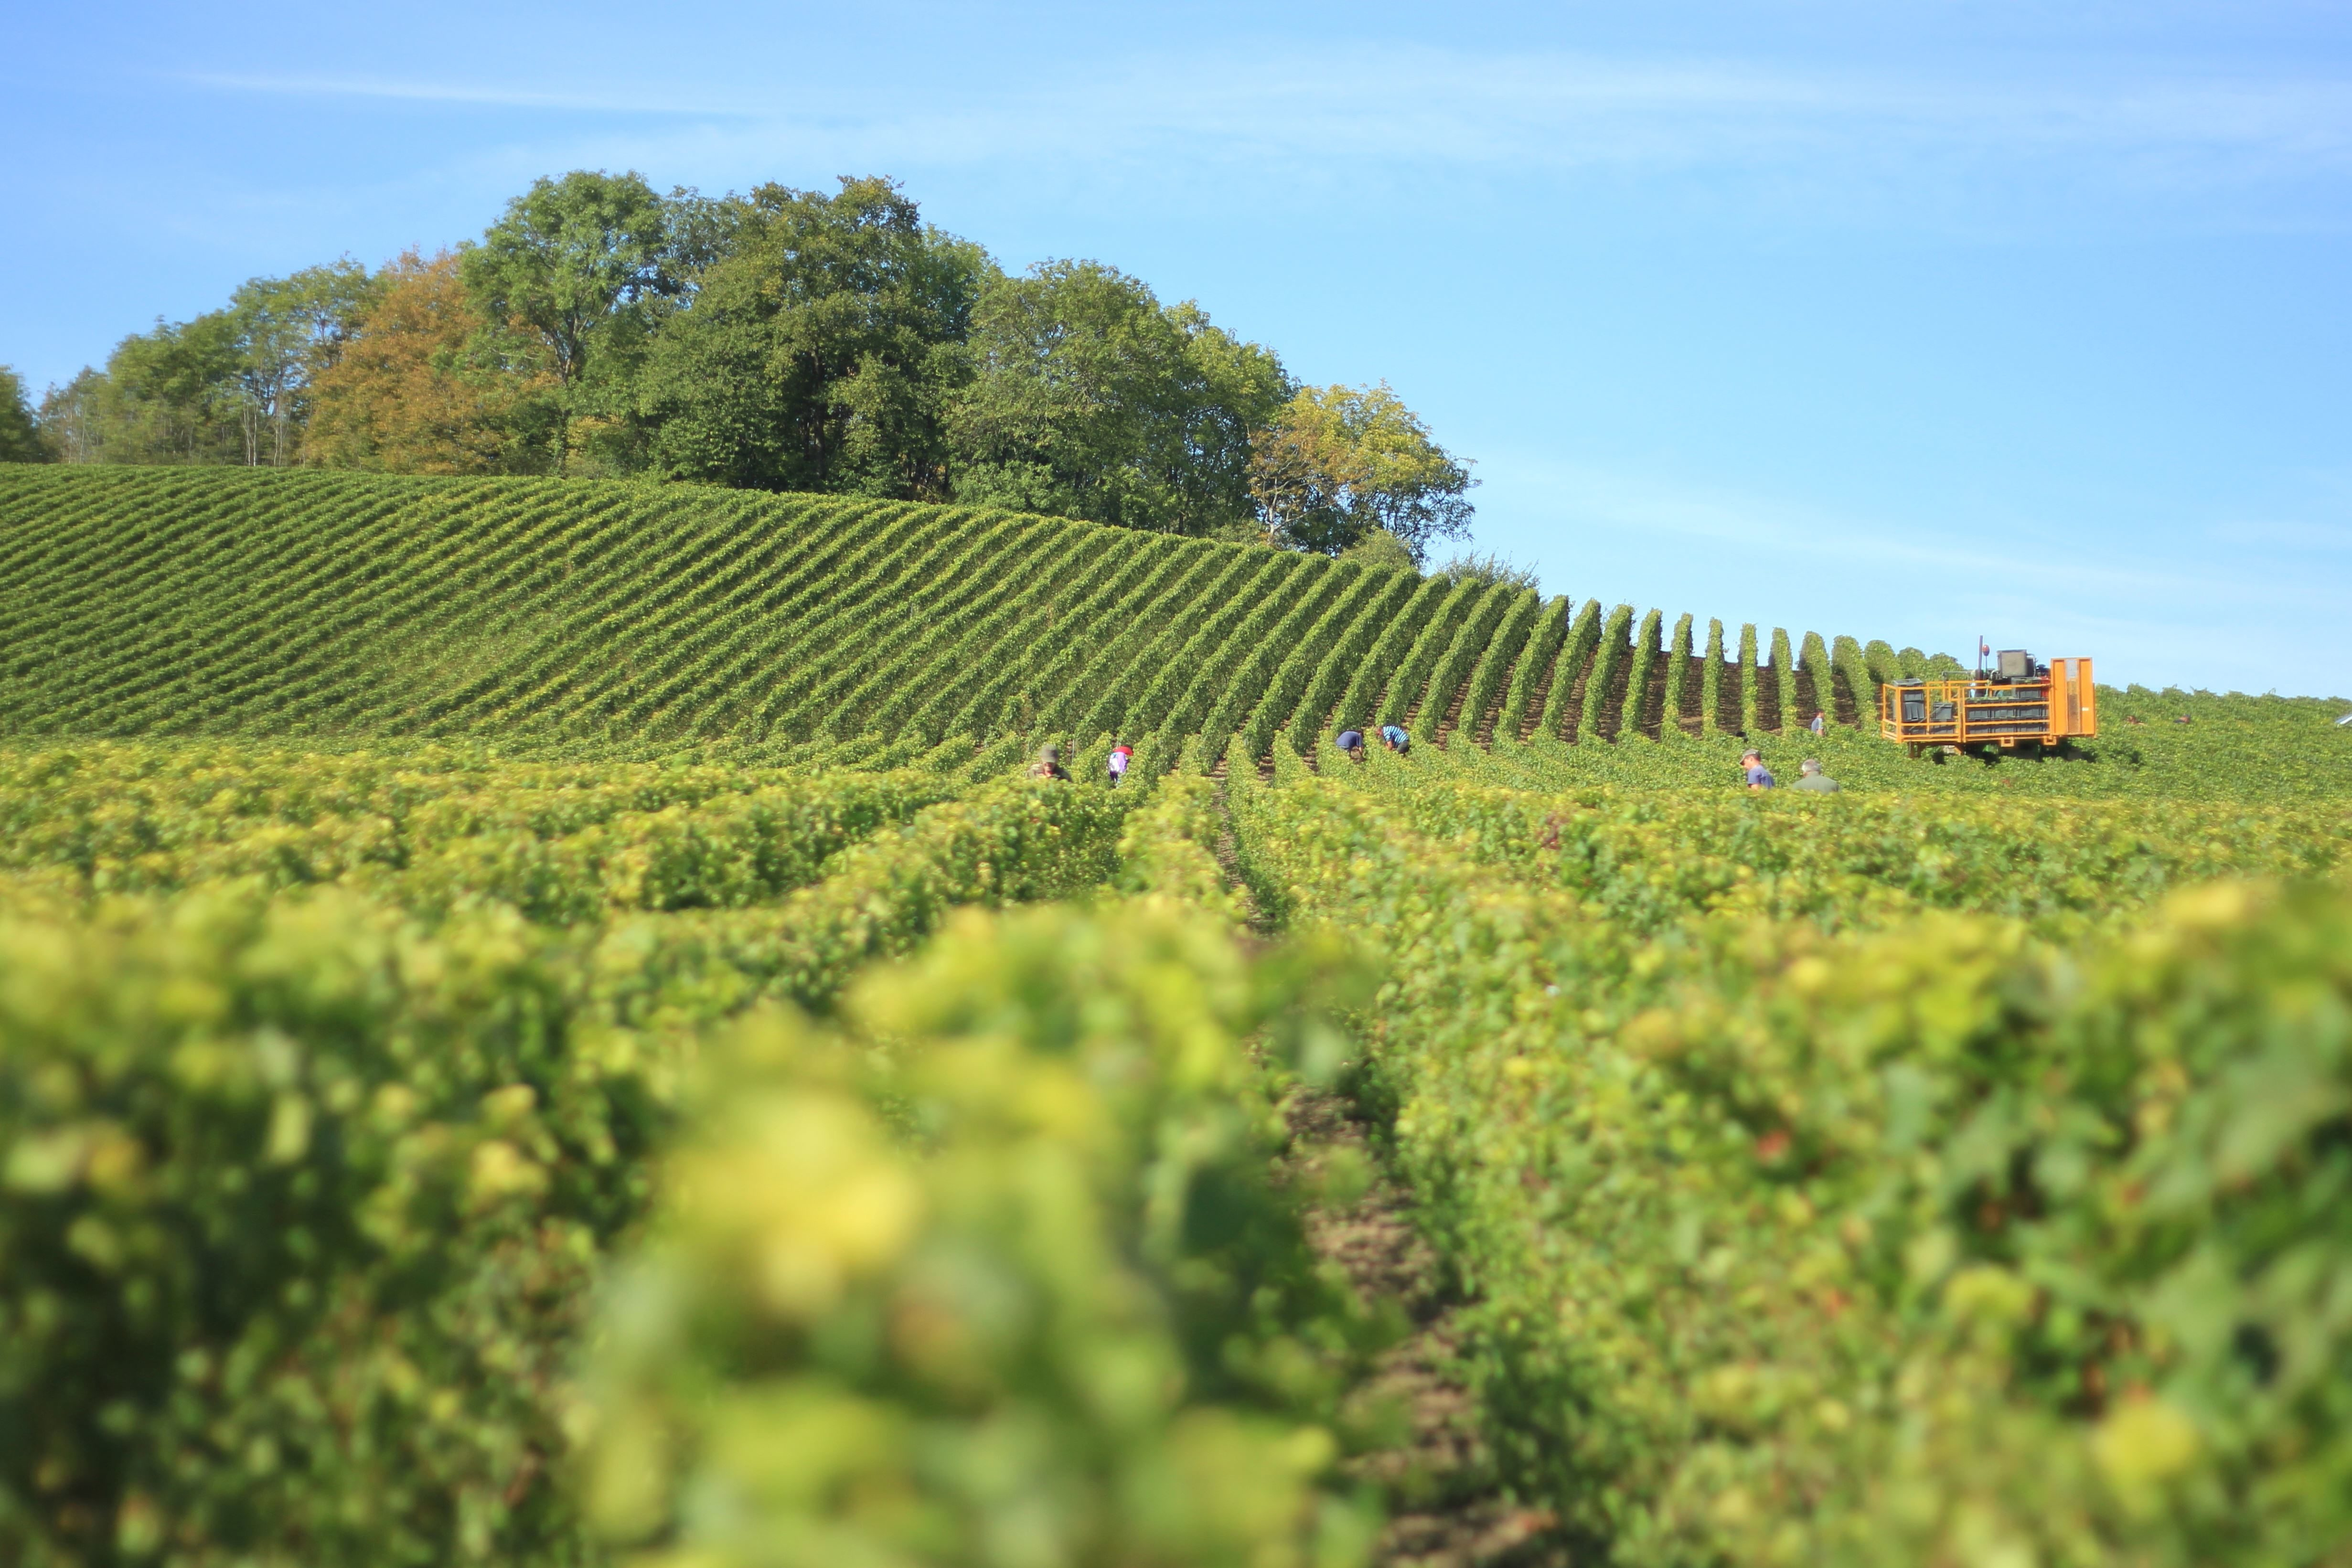 Free picture: vineyard, agriculture, countryside, crops, field